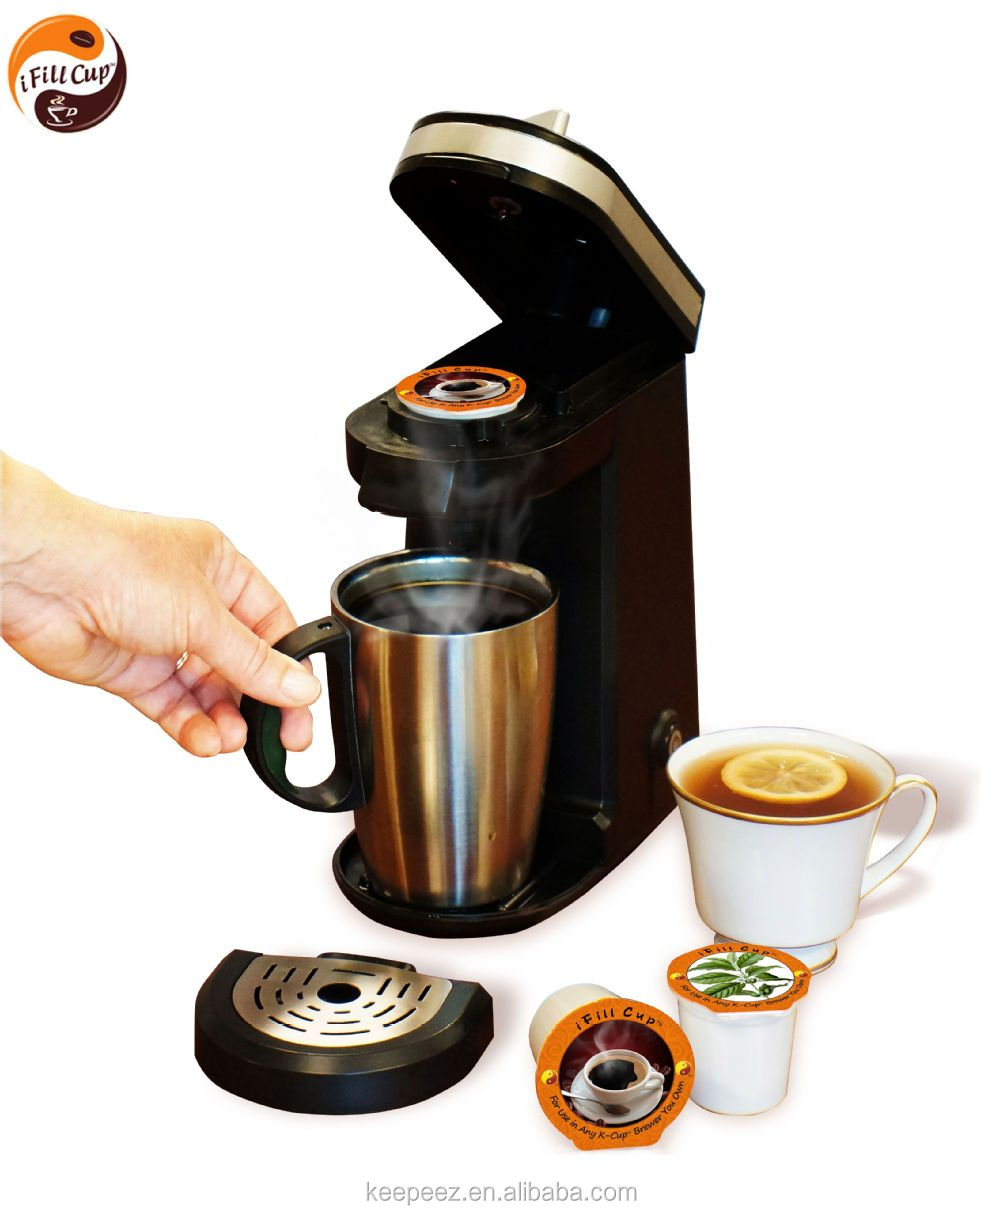 Coffee Powder Capsule Houseware Factory New Gift Items Keurig K Cup